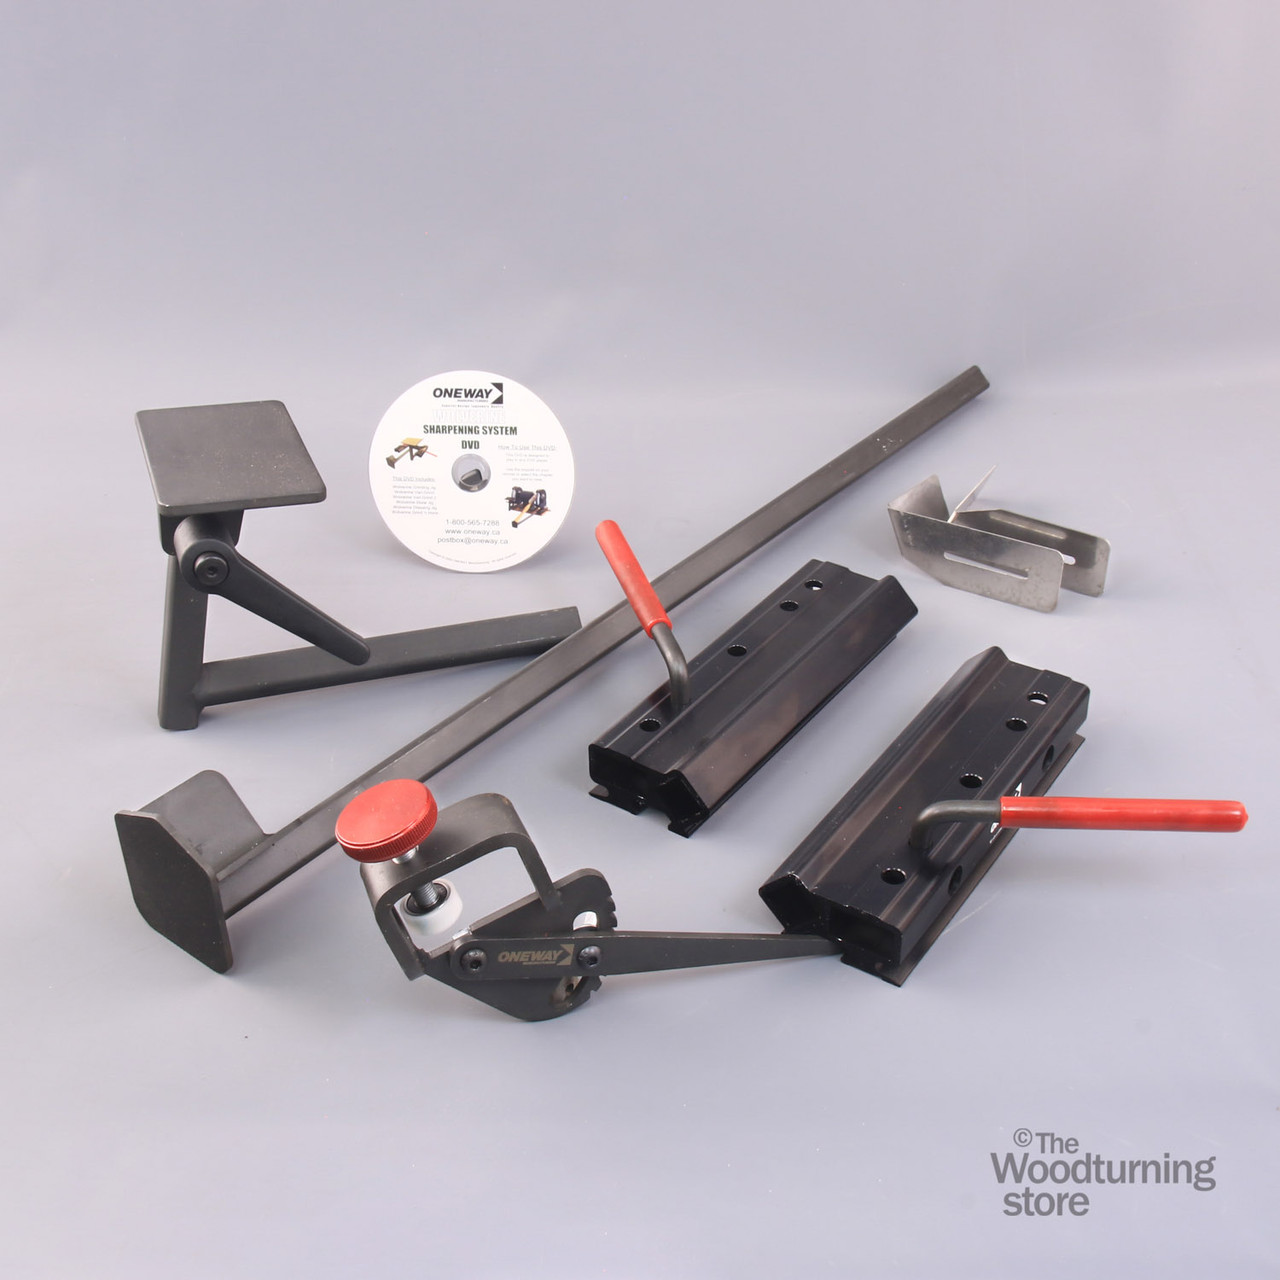 Oneway Wolverine Grinding Jig with Vari-Grind Attachment